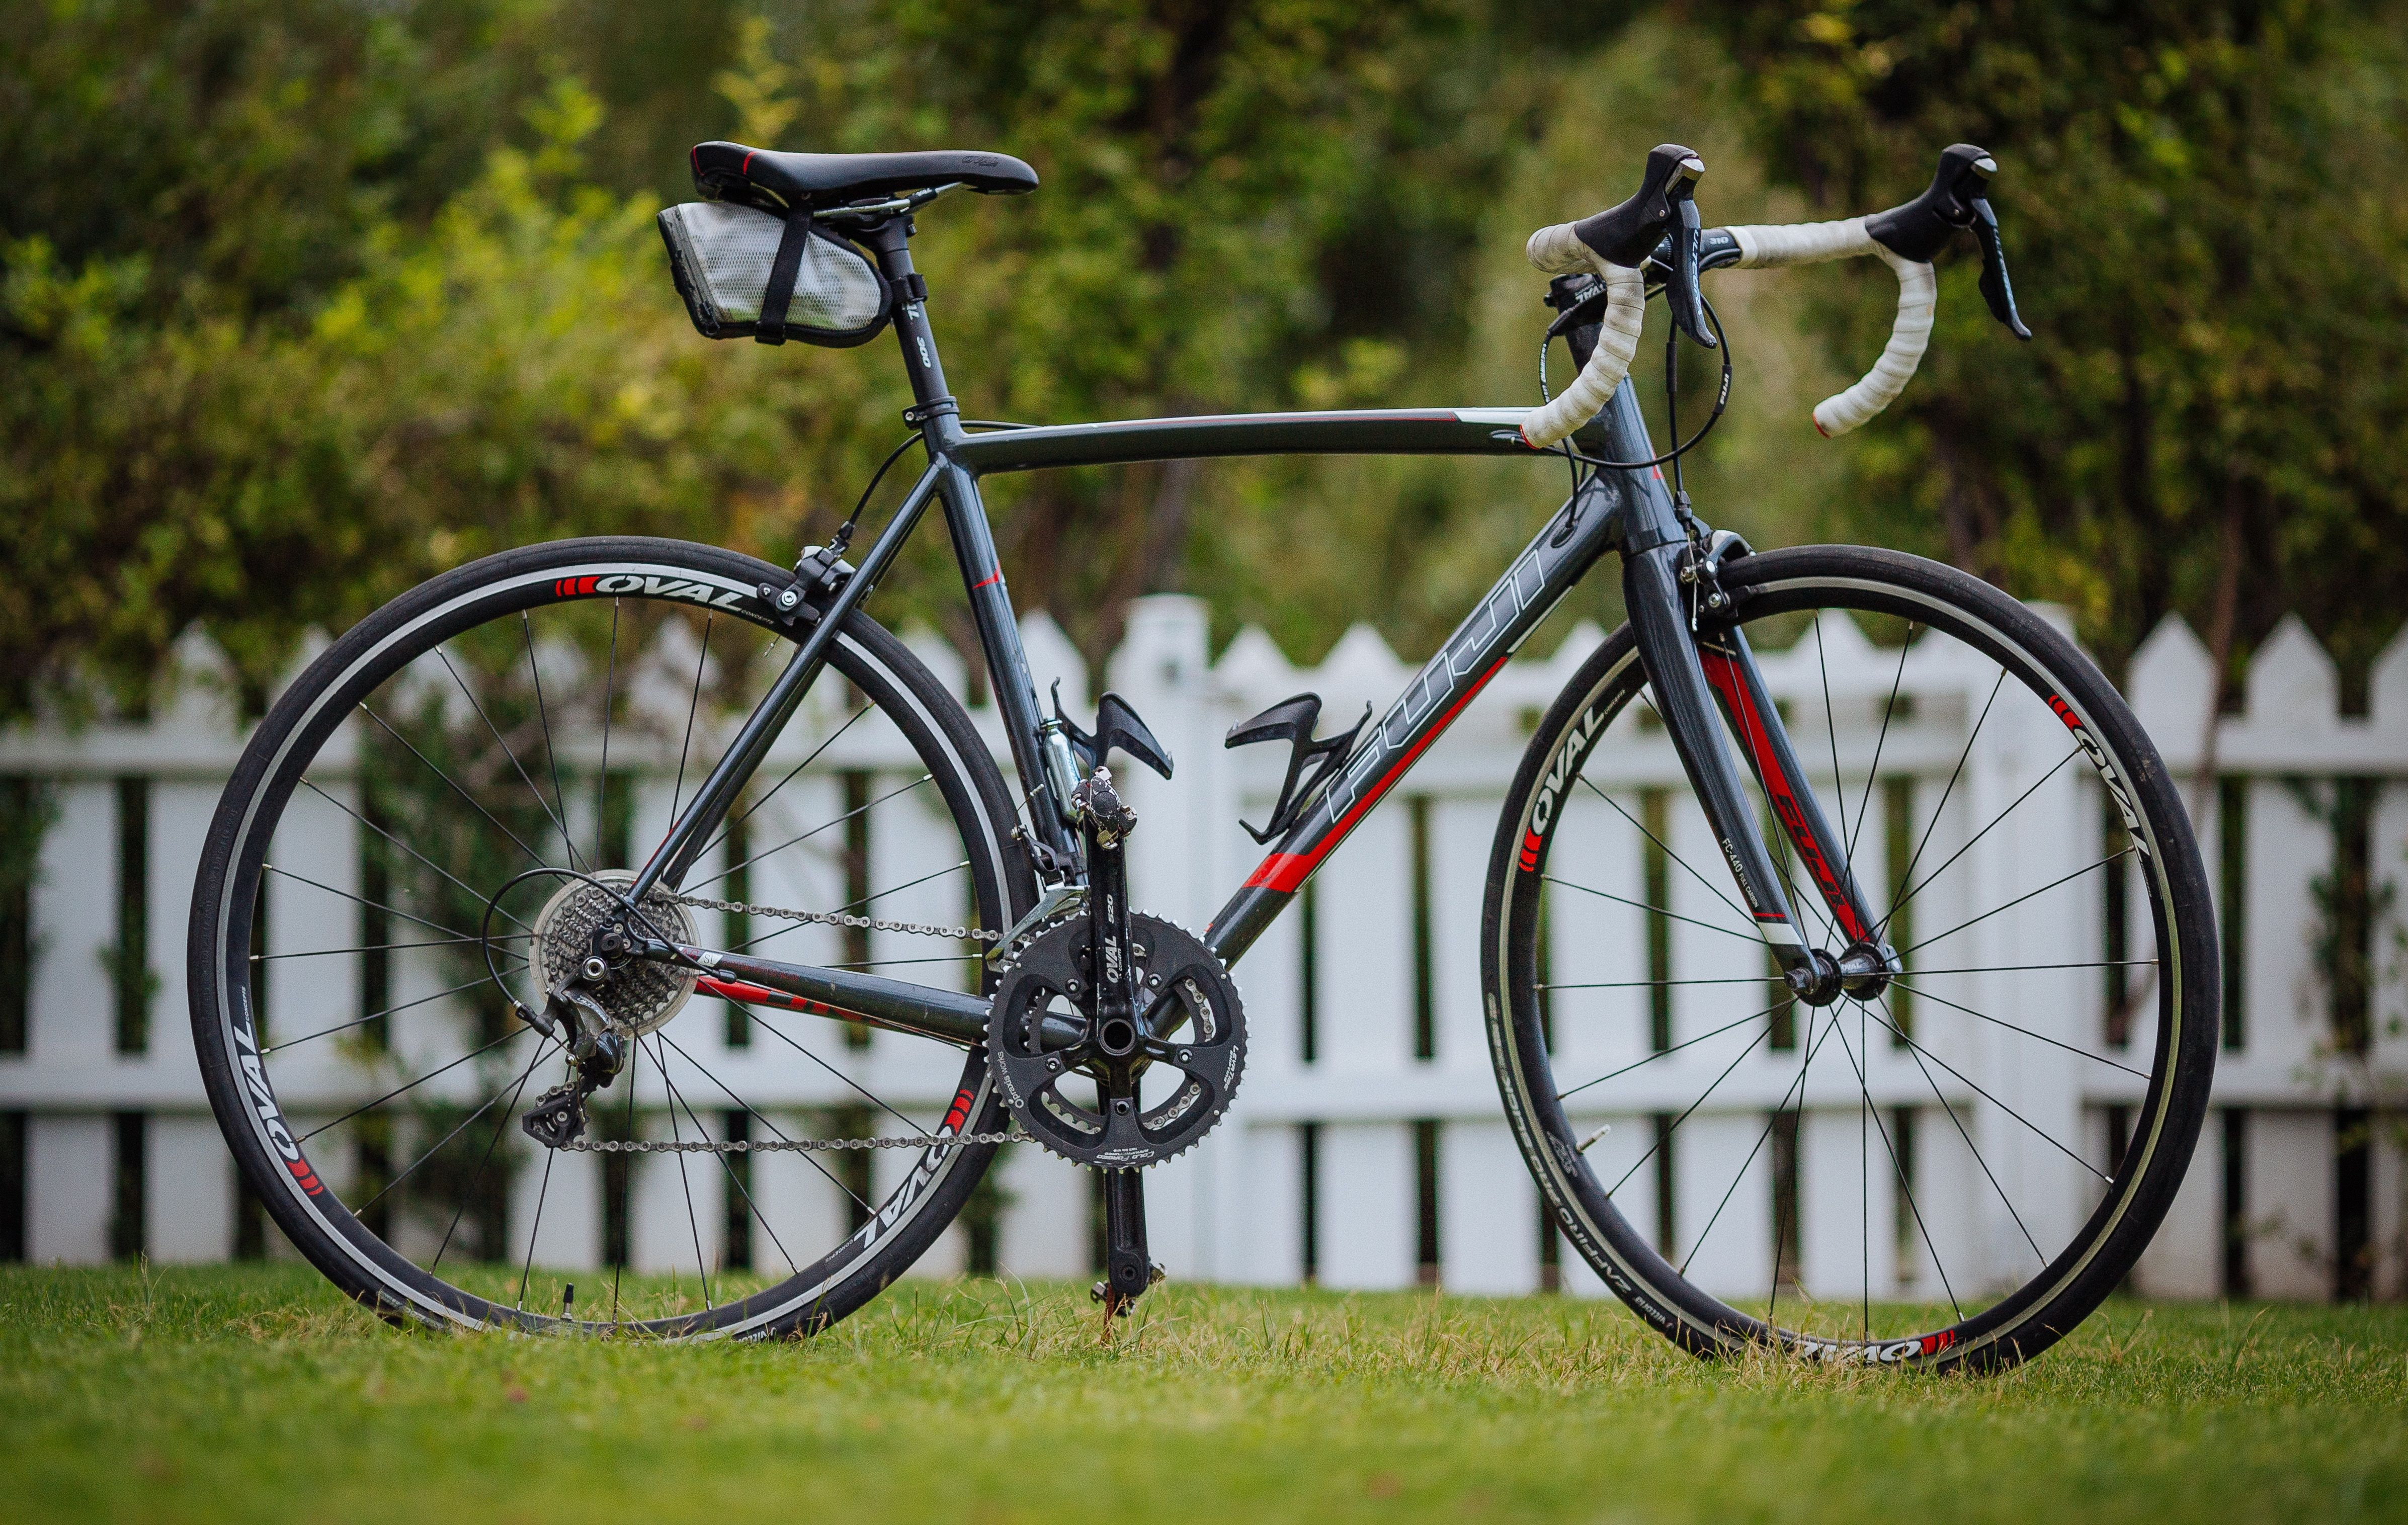 The 10 Best Road Bikes Under 300 In 2020 Beyond Sportsly Beginner Road Bike Best Road Bike Road Bikes